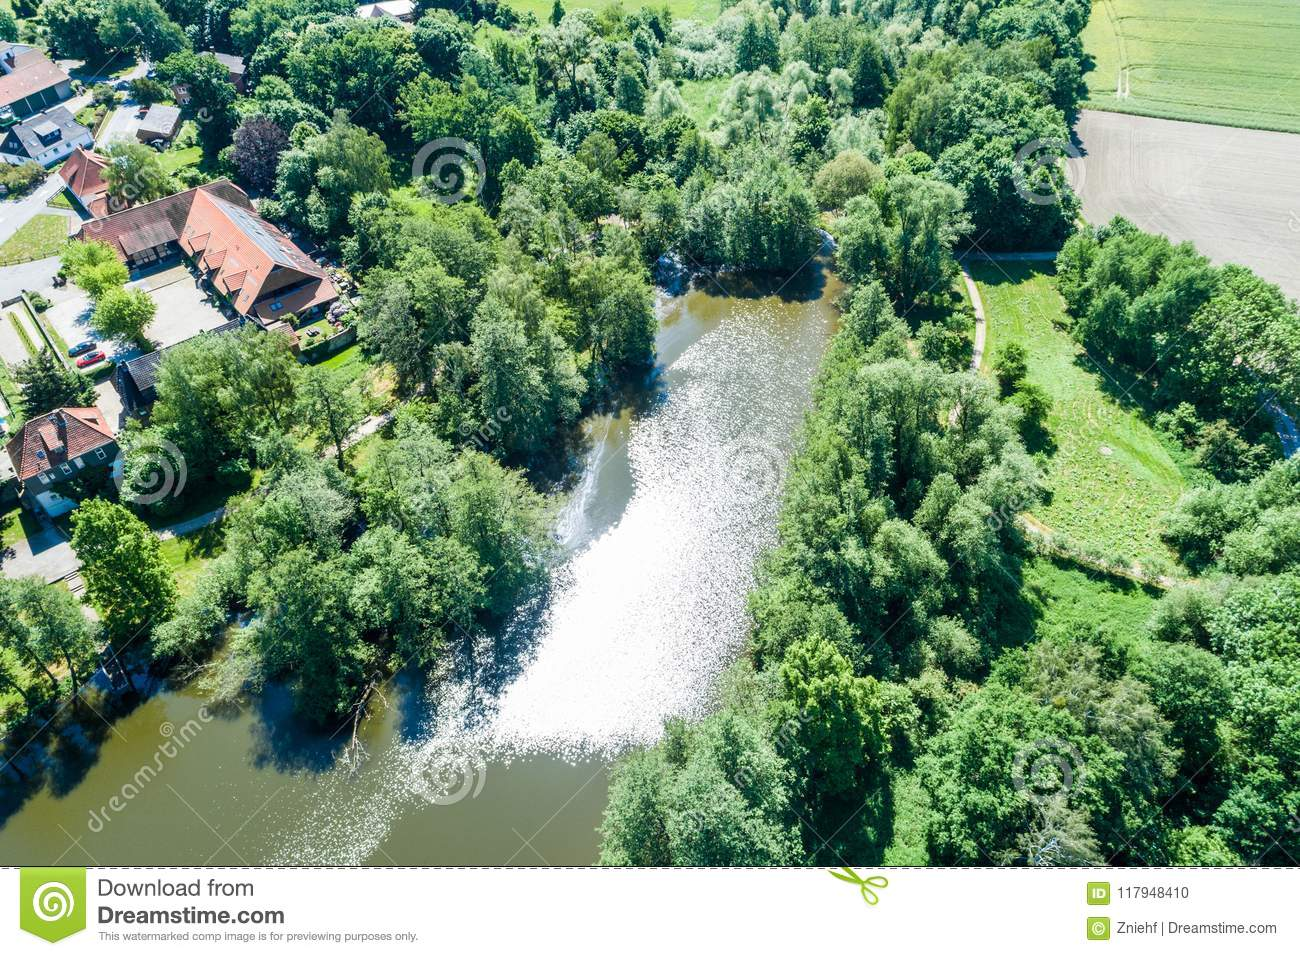 The pond at the moated castle Neuhaus from the air, with bushes and trees, at the edge of the village